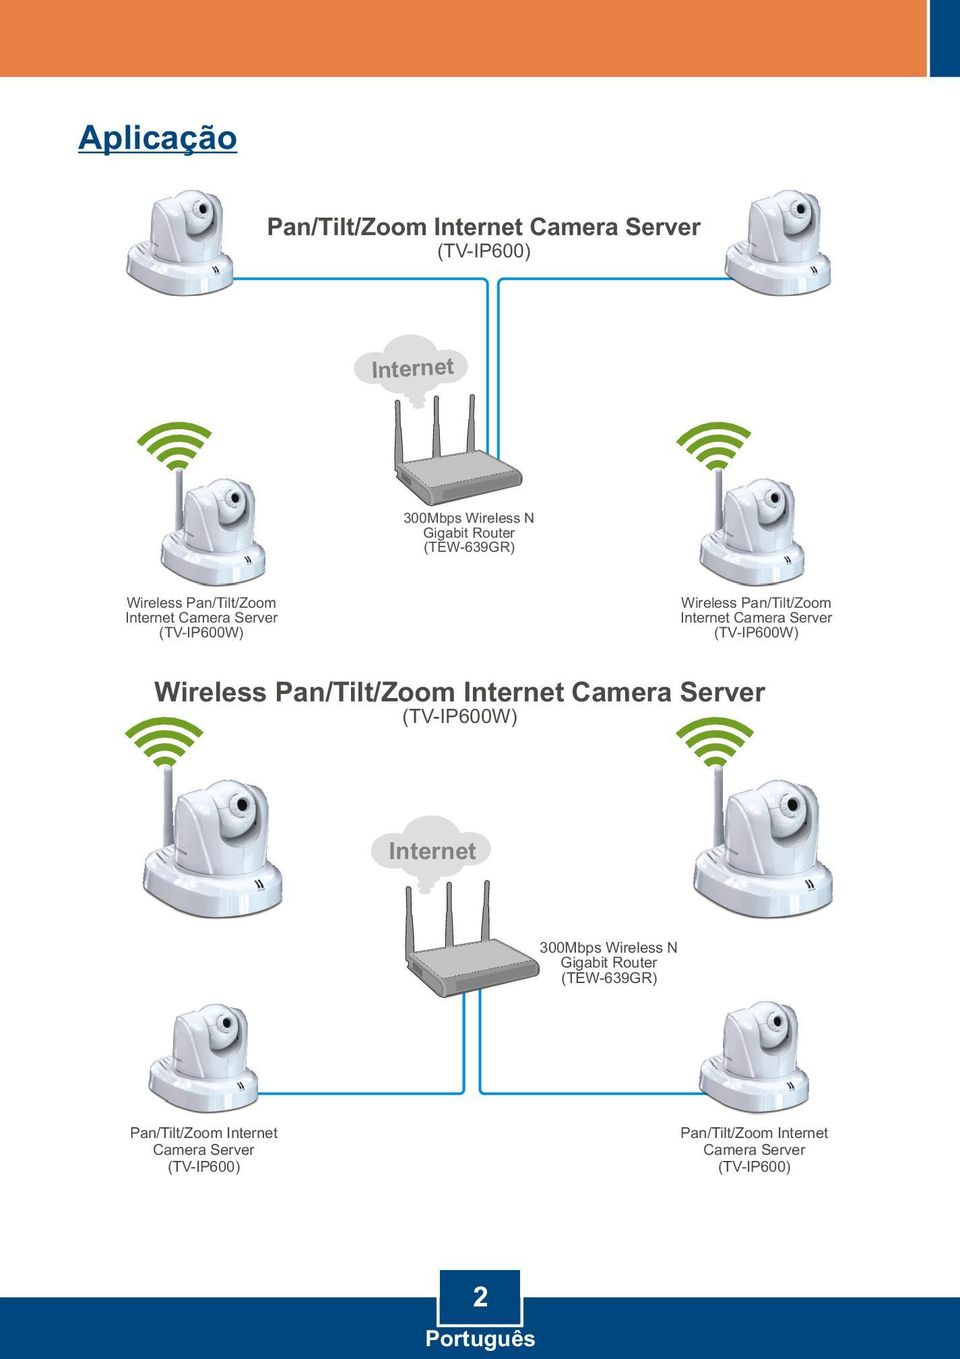 Server (TV-IP600W) Wireless Pan/Tilt/Zoom Internet Camera Server (TV-IP600W) Internet 300Mbps Wireless N